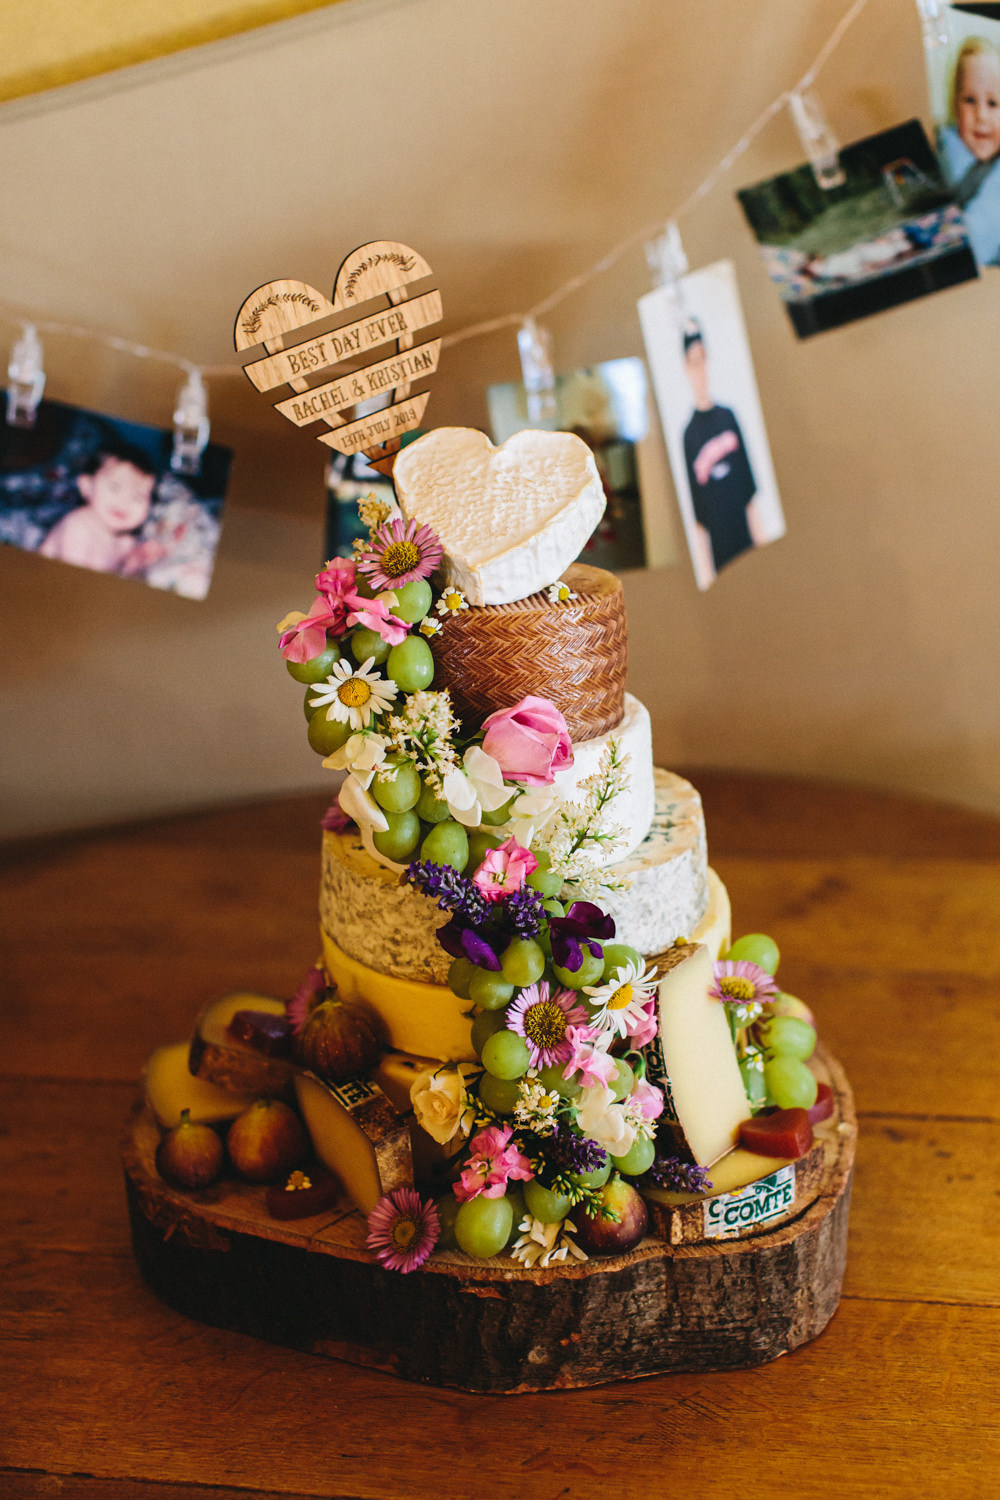 Cheese Tower Stack Cake Outbuildings Wedding Jessica O'Shaughnessy Photography